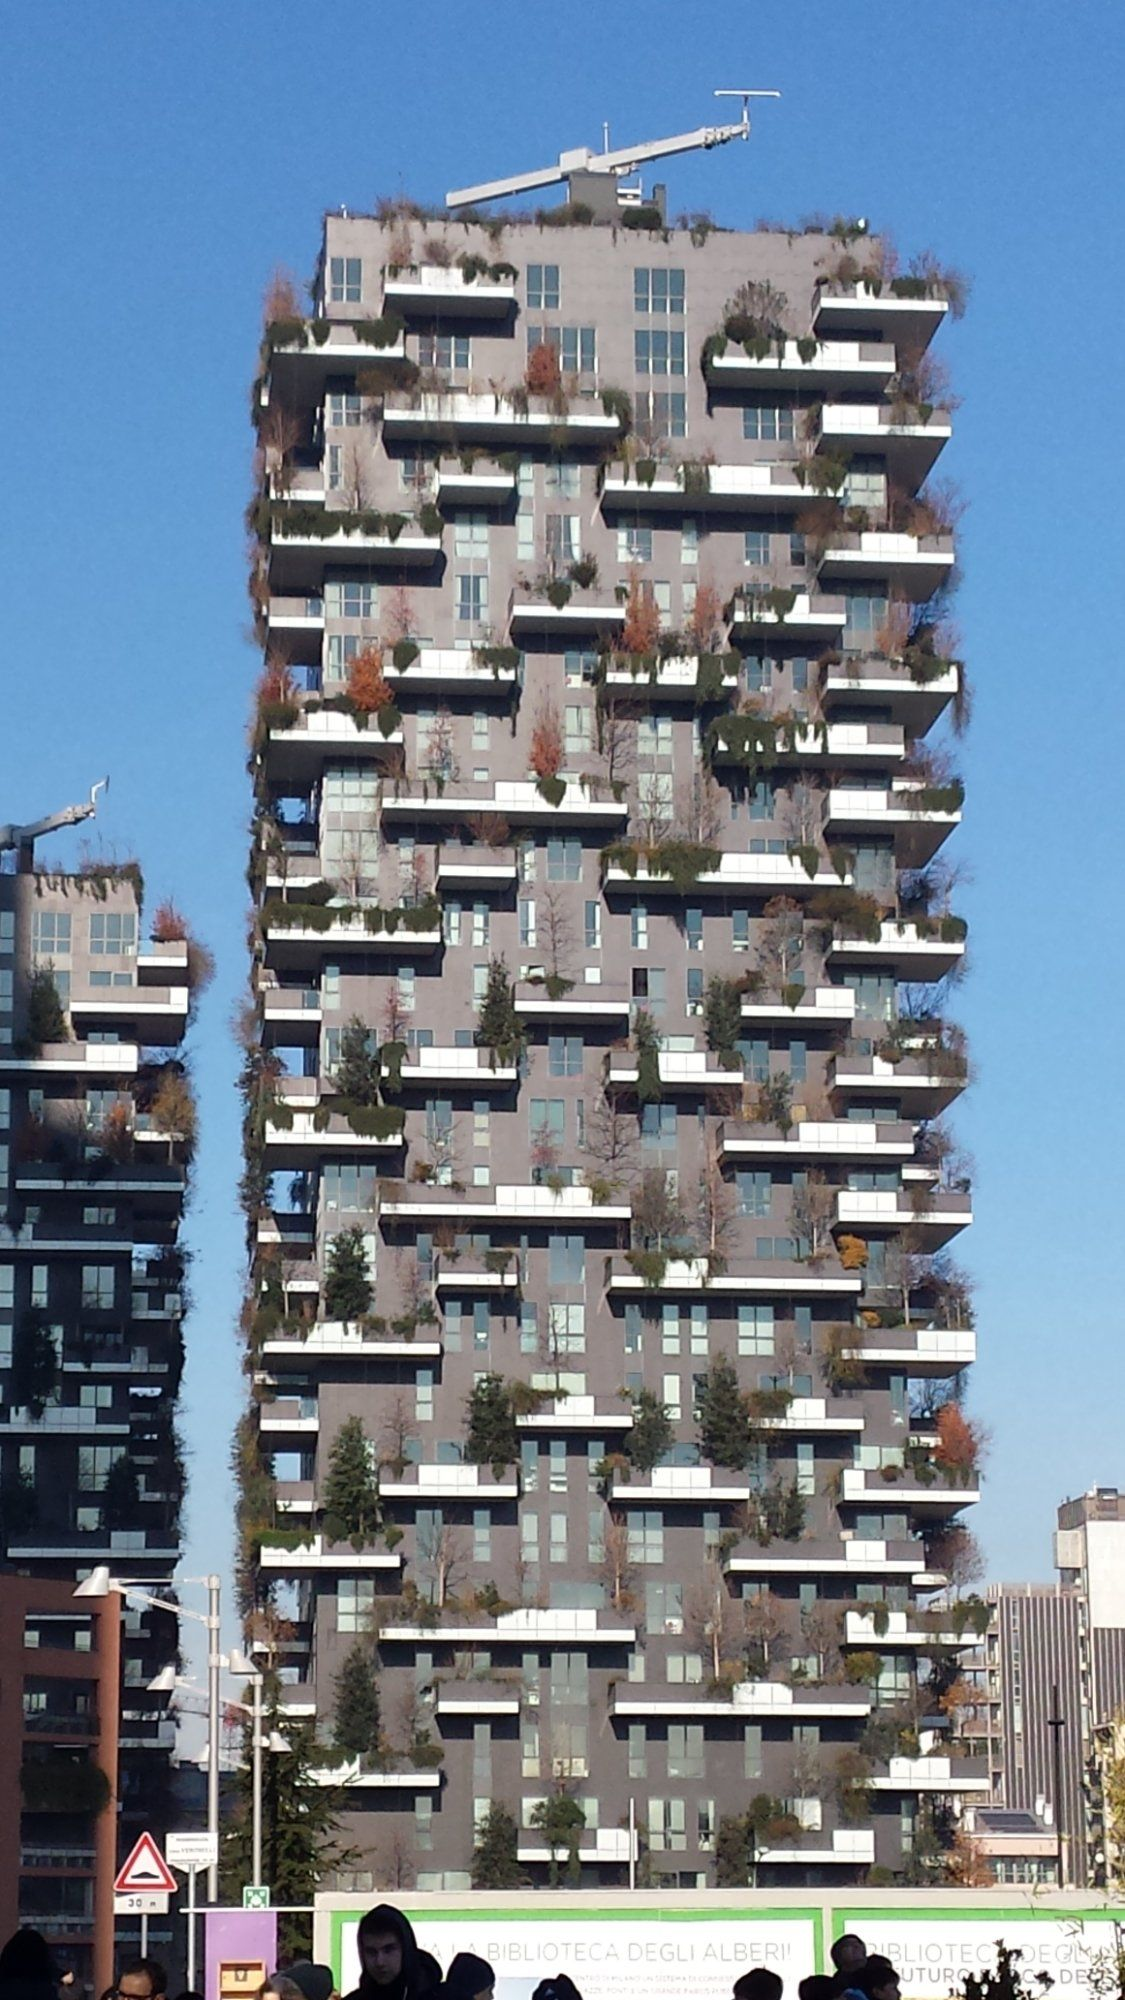 Foto Bosco Verticale Milano bosco verticale, milan: see 270 reviews, articles, and 183